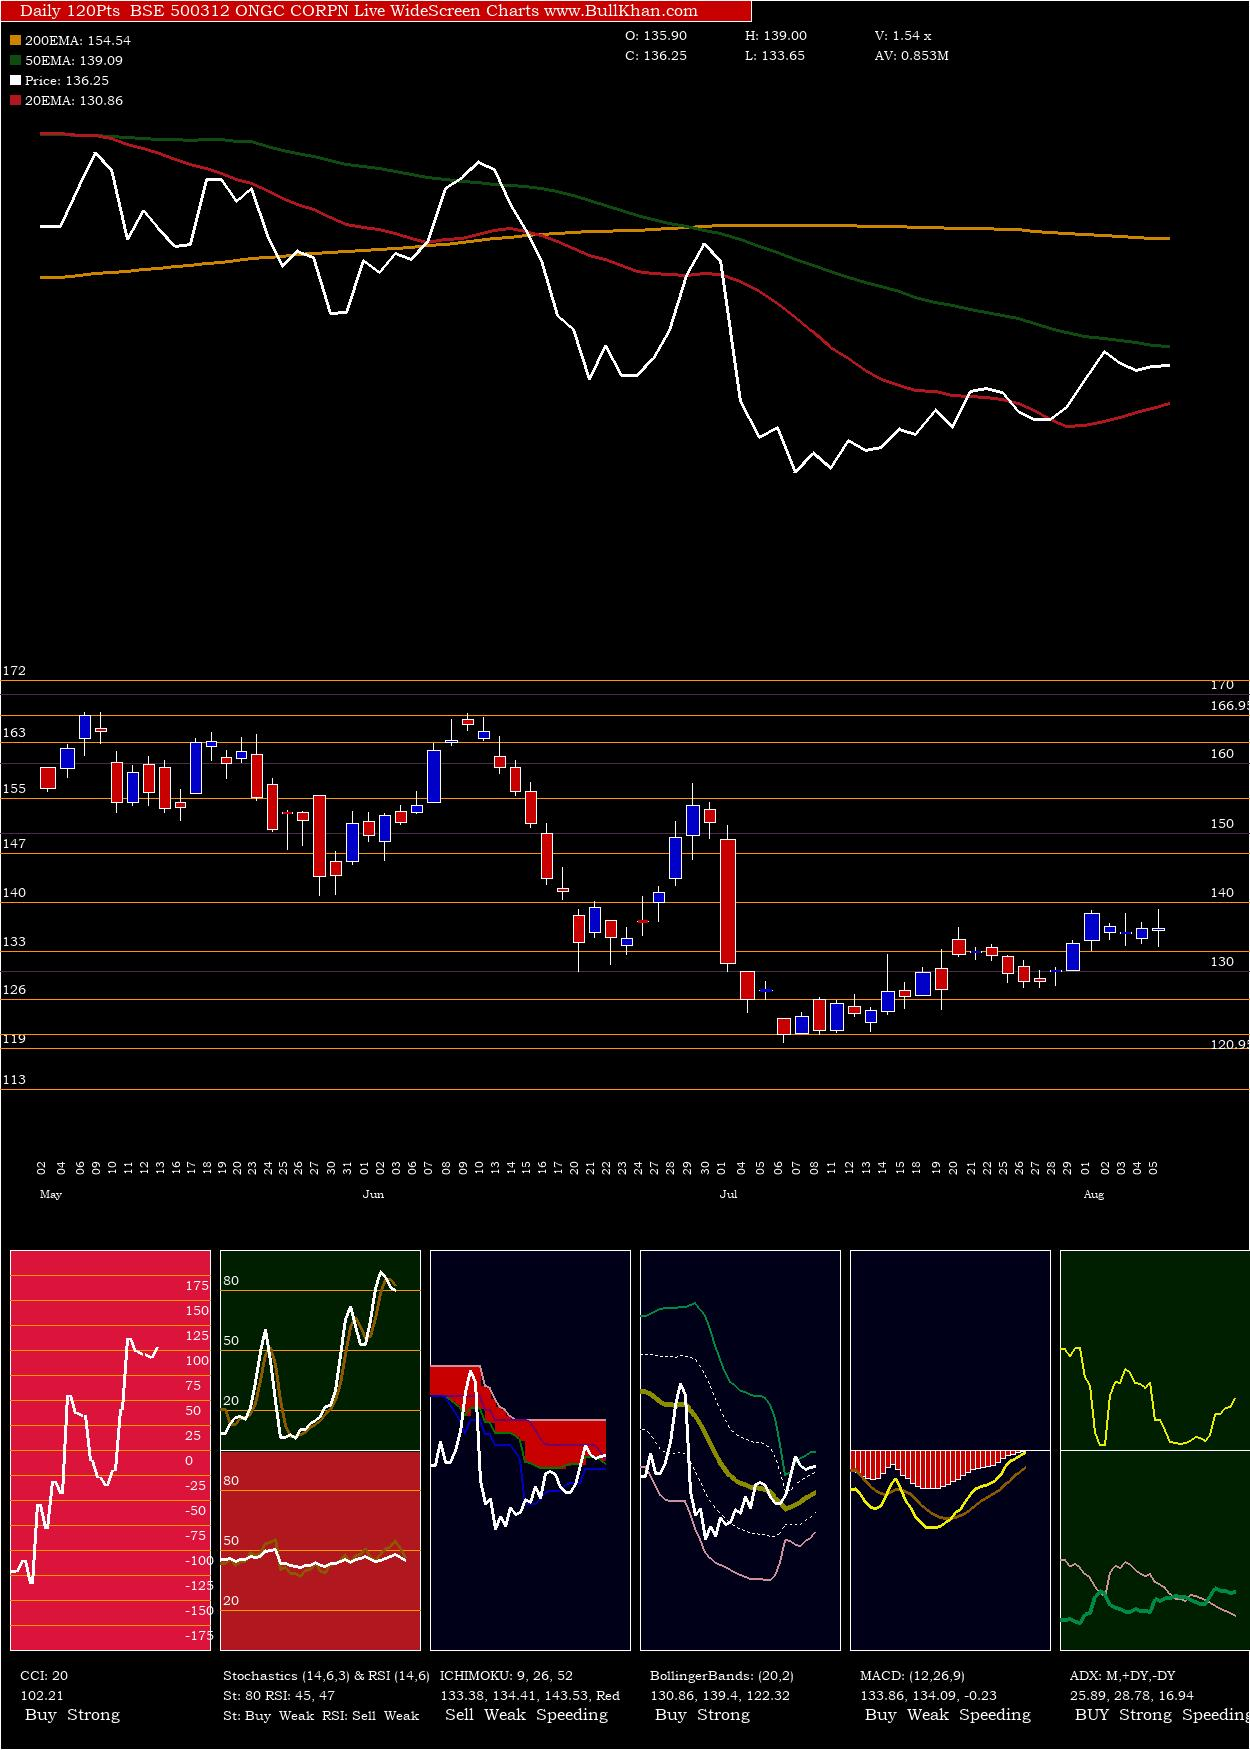 Ongc Corpn charts and indicators